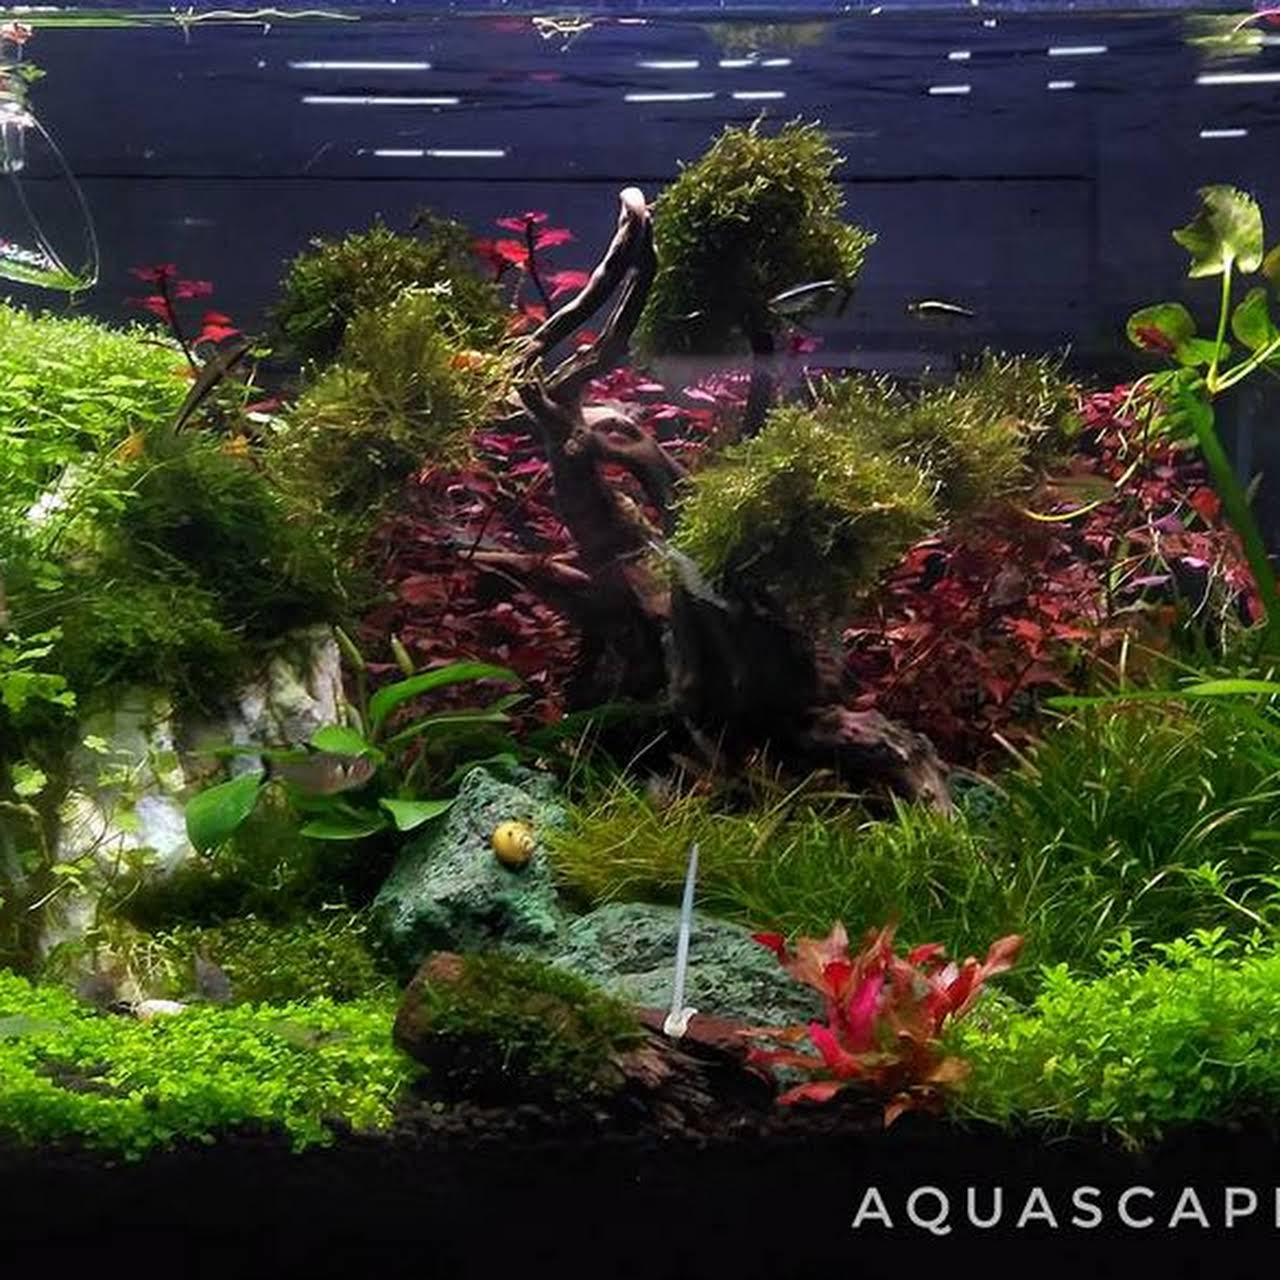 Aquascape Shop Kl